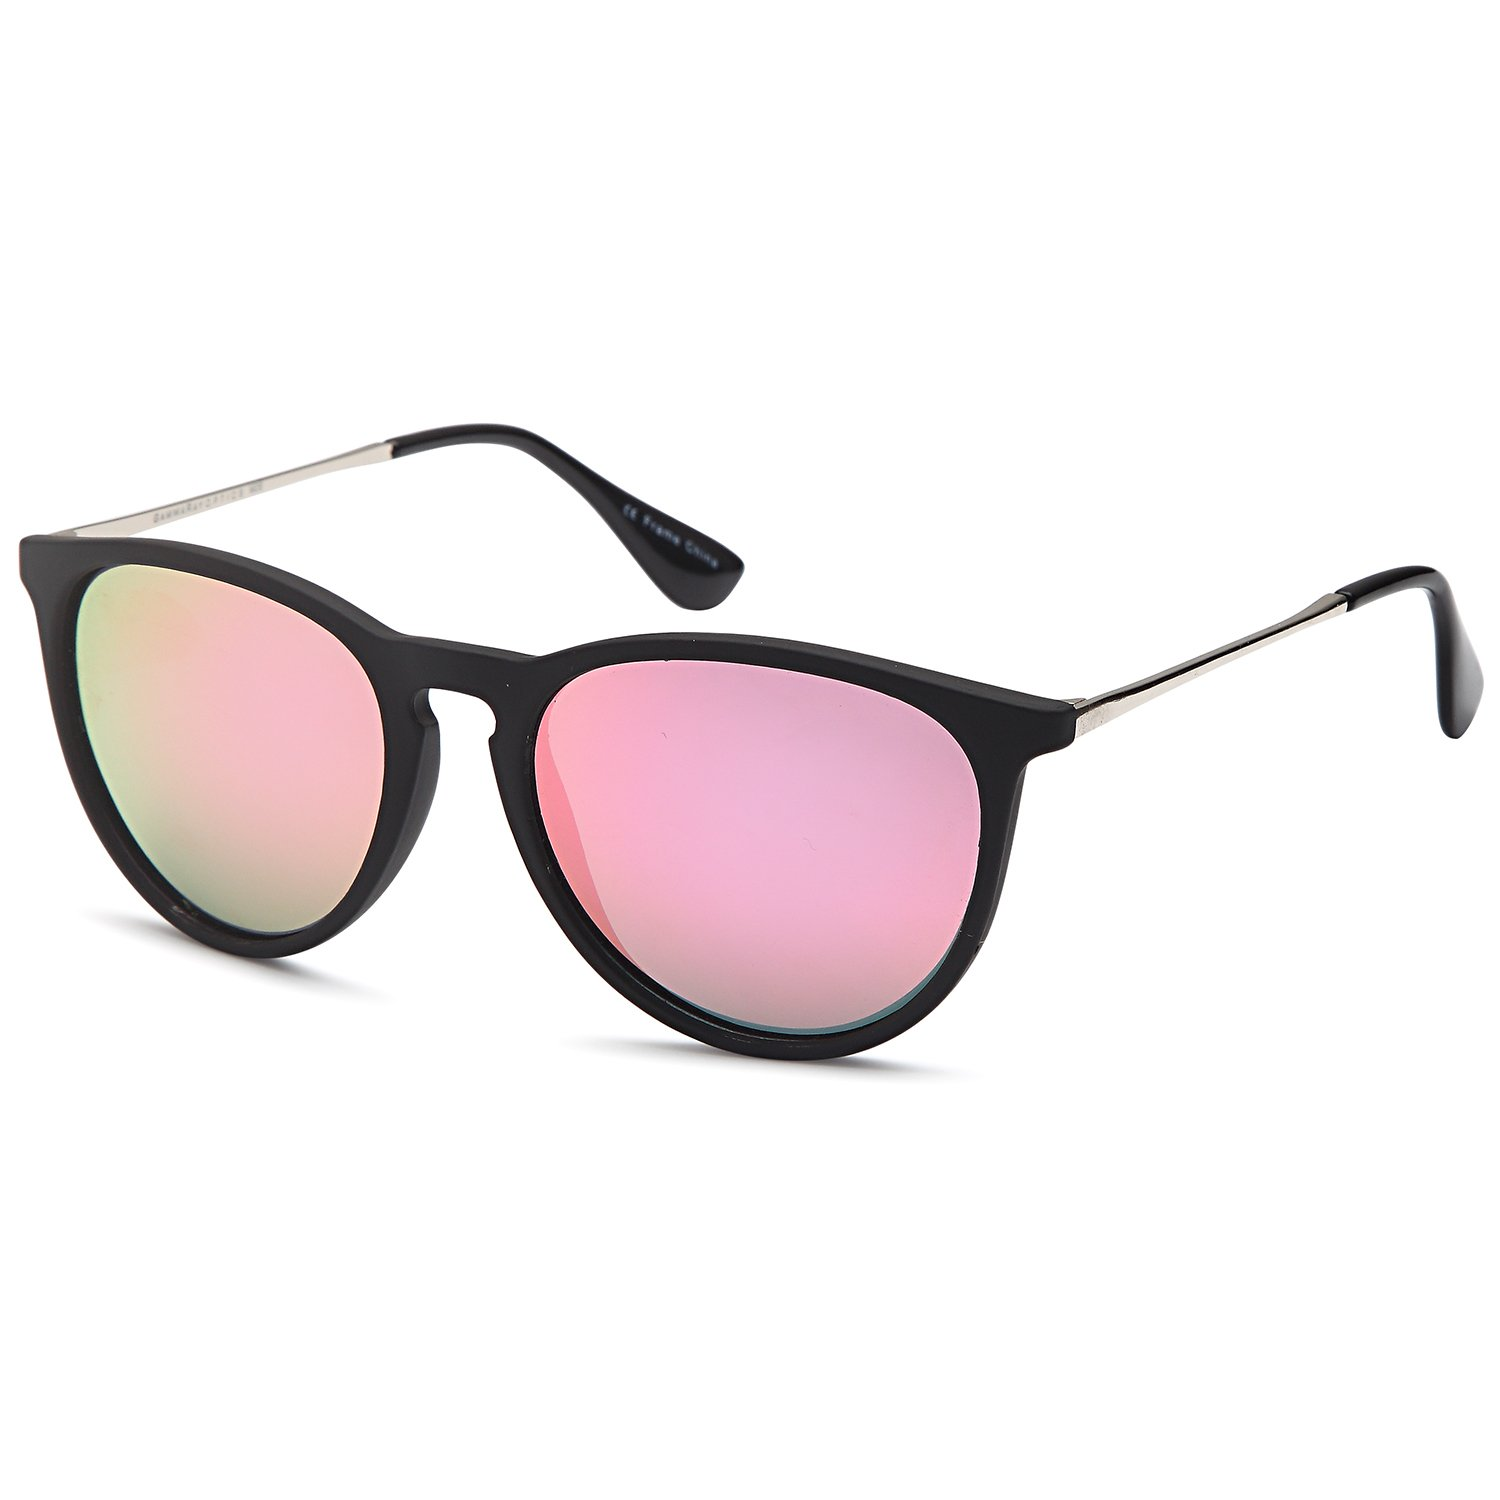 GAMMA RAY Polarized UV400 Vintage Retro Round Sunglasses